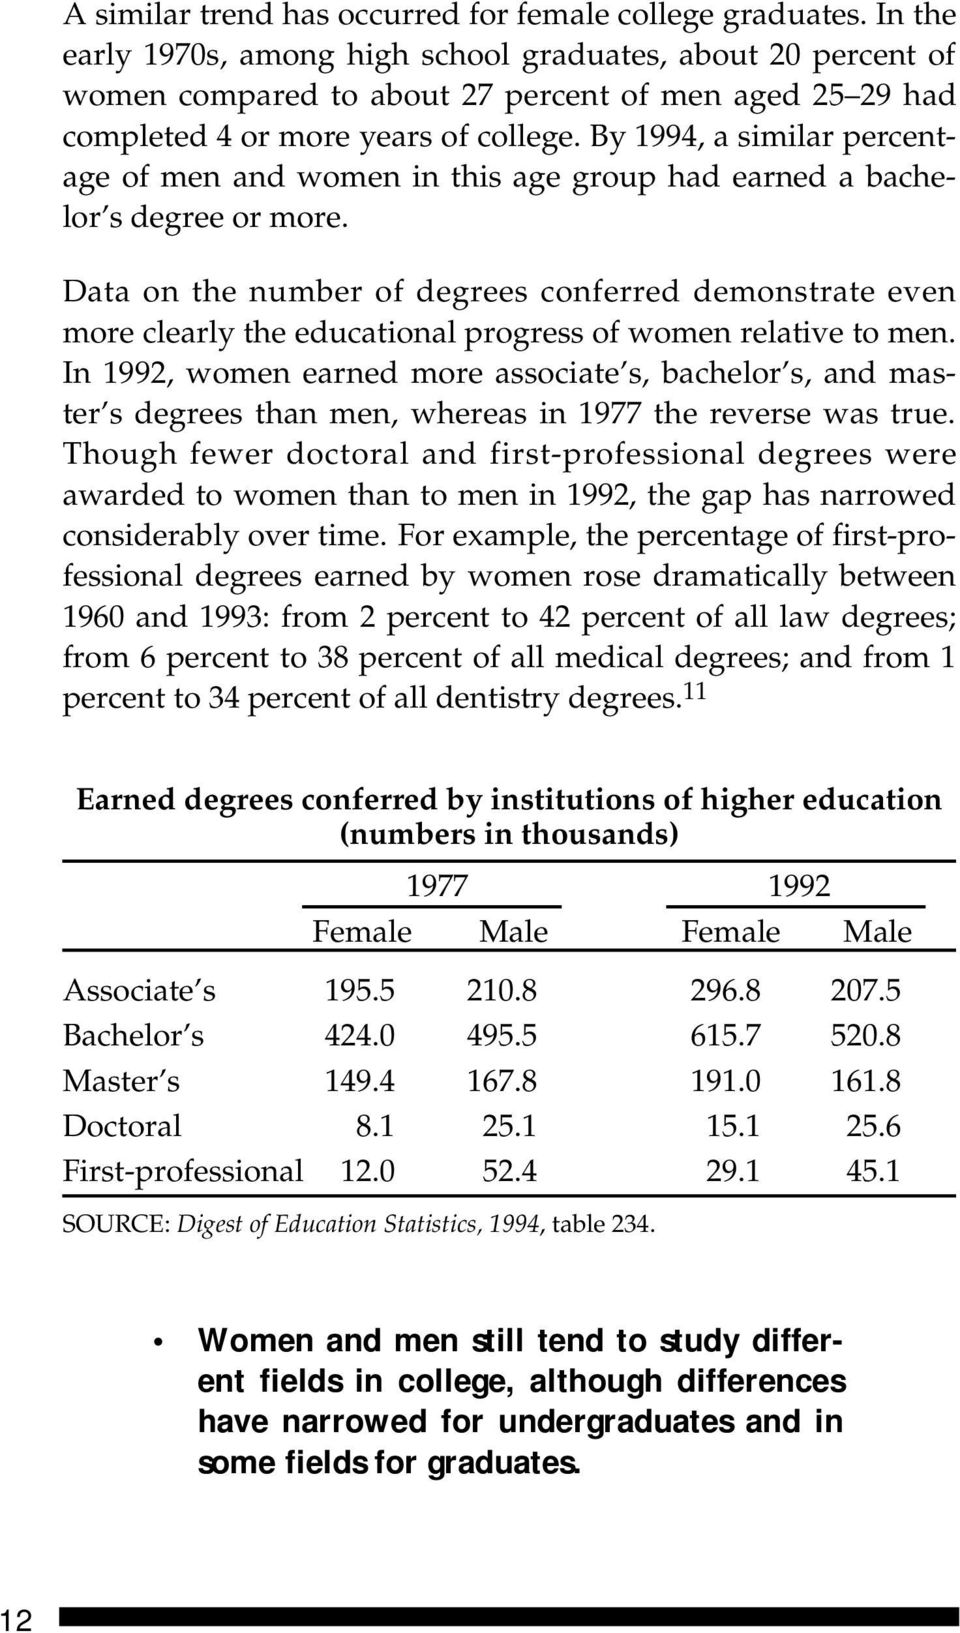 By 1994, a similar percentage of men and women in this age group had earned a bachelor s degree or more.